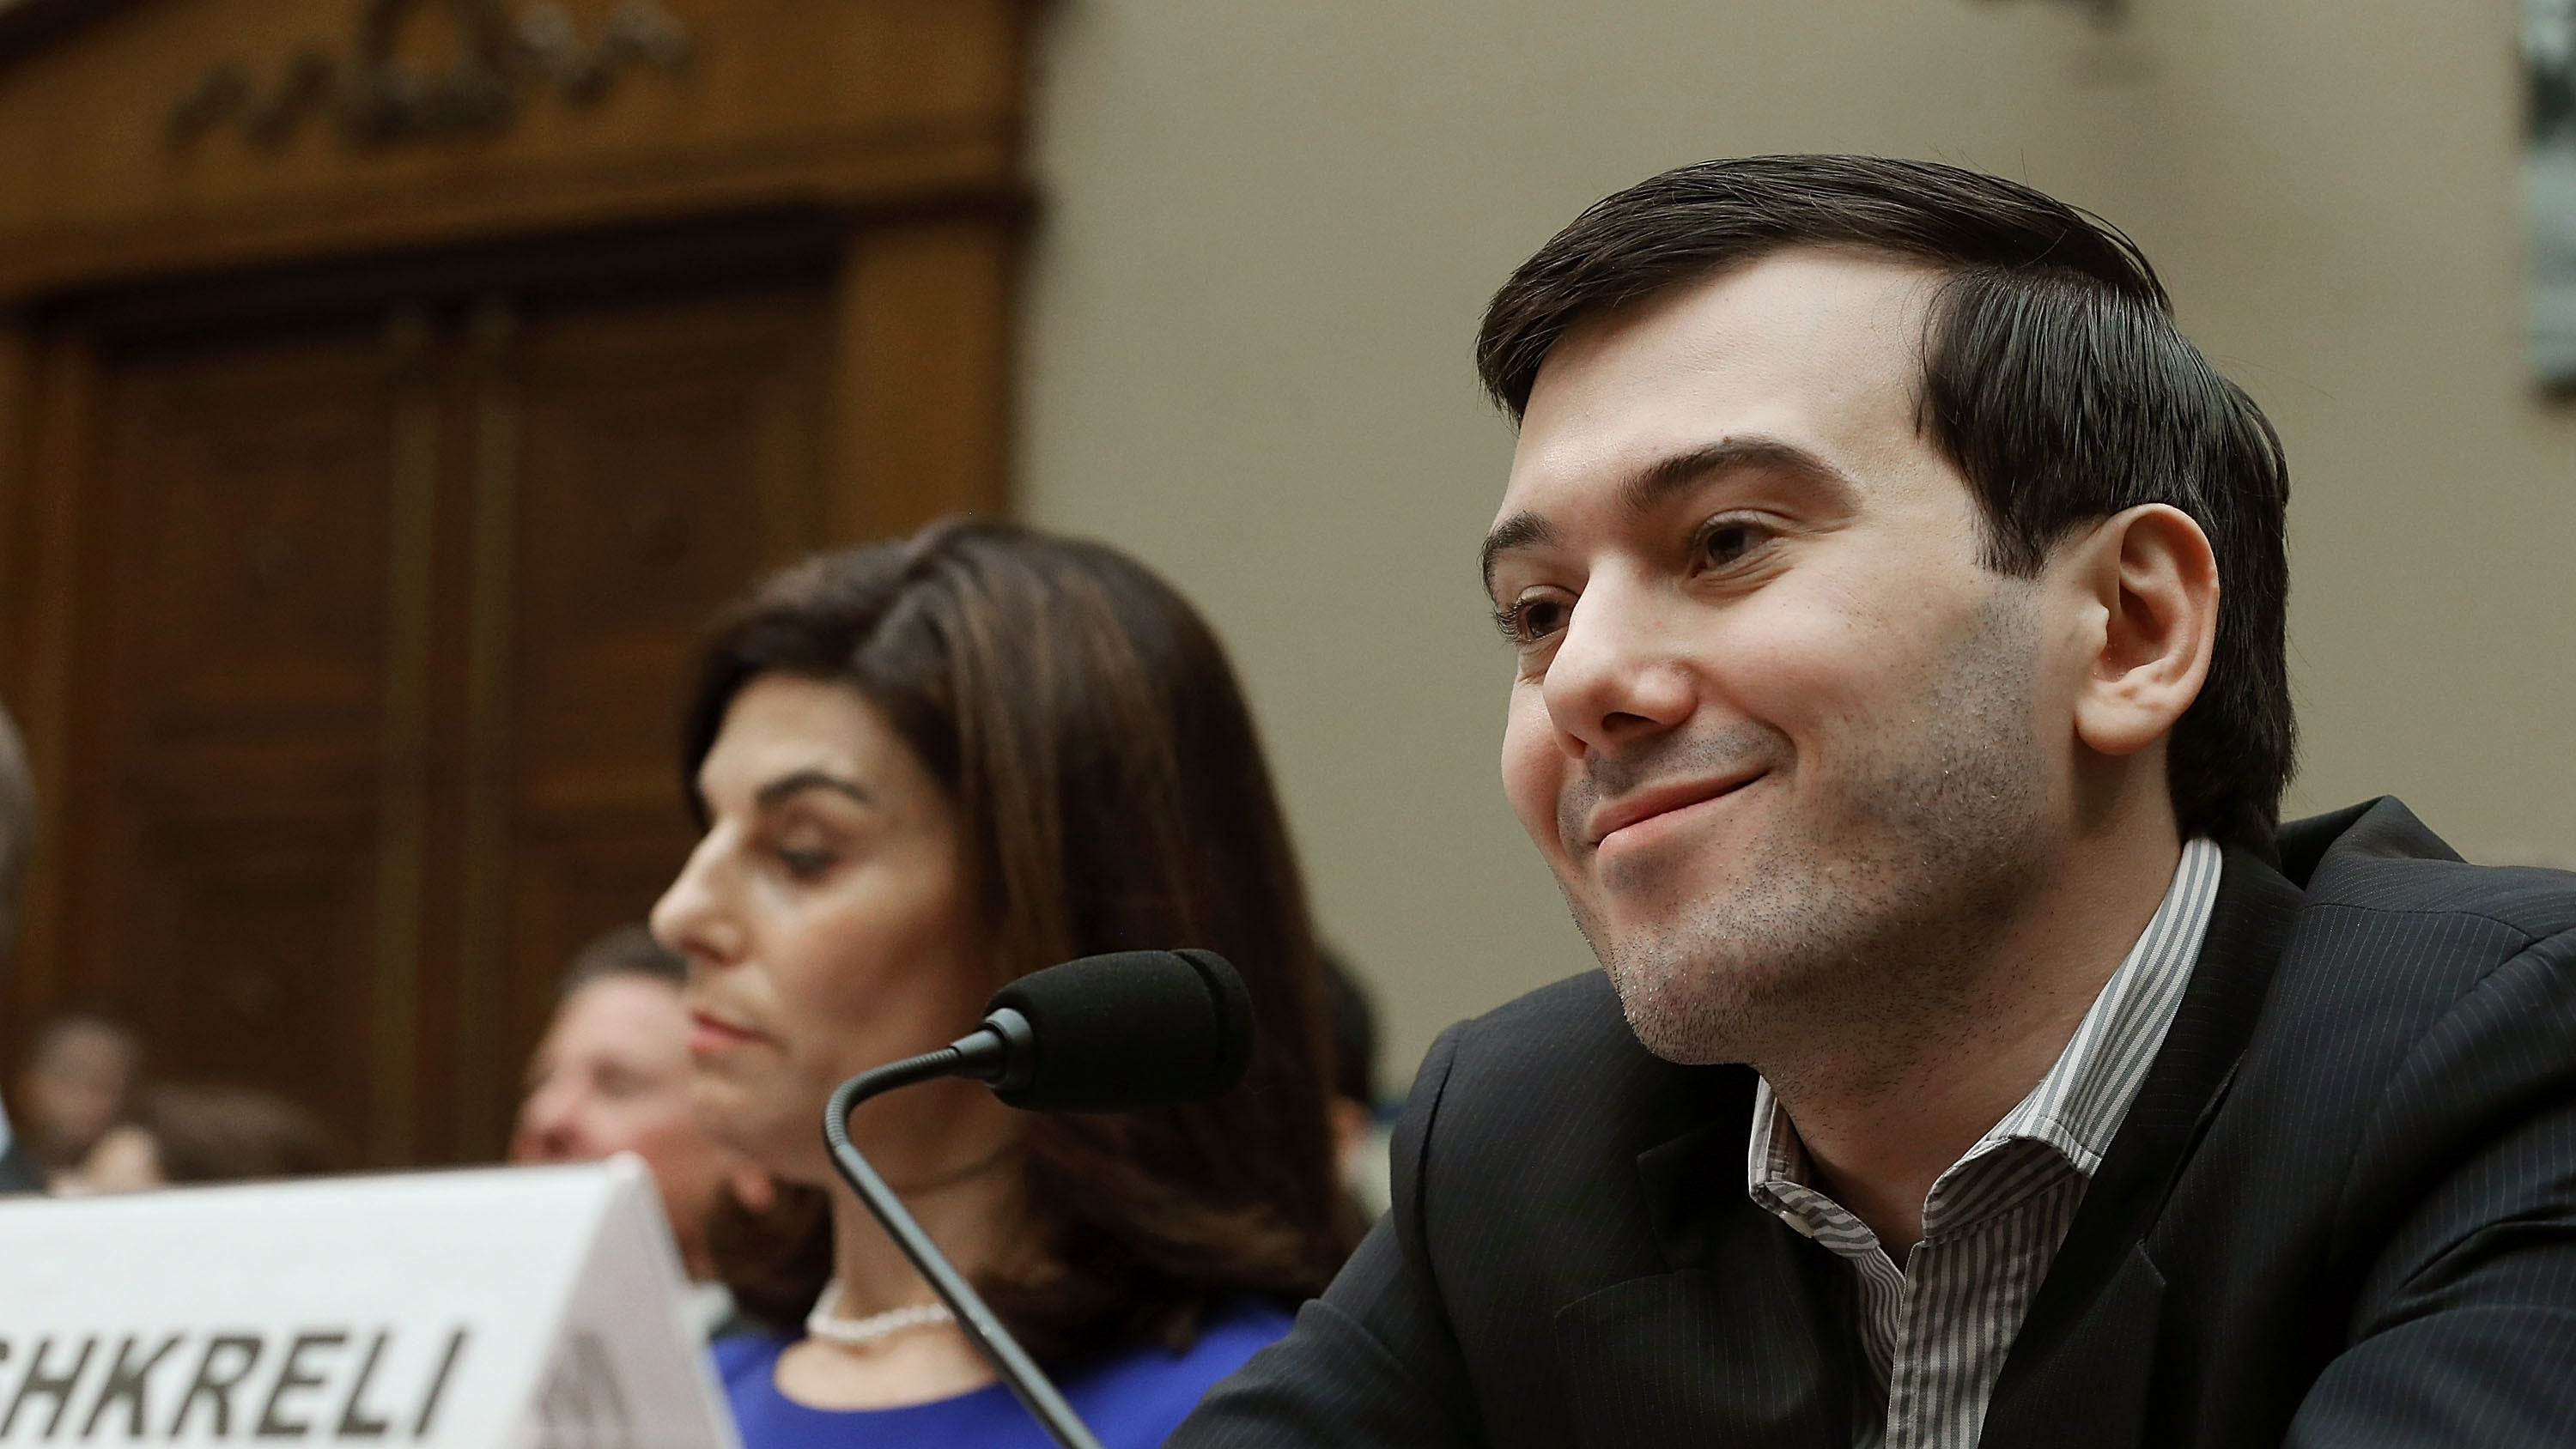 Hell Freezes Over As Martin Shkreli Performs A Public Service